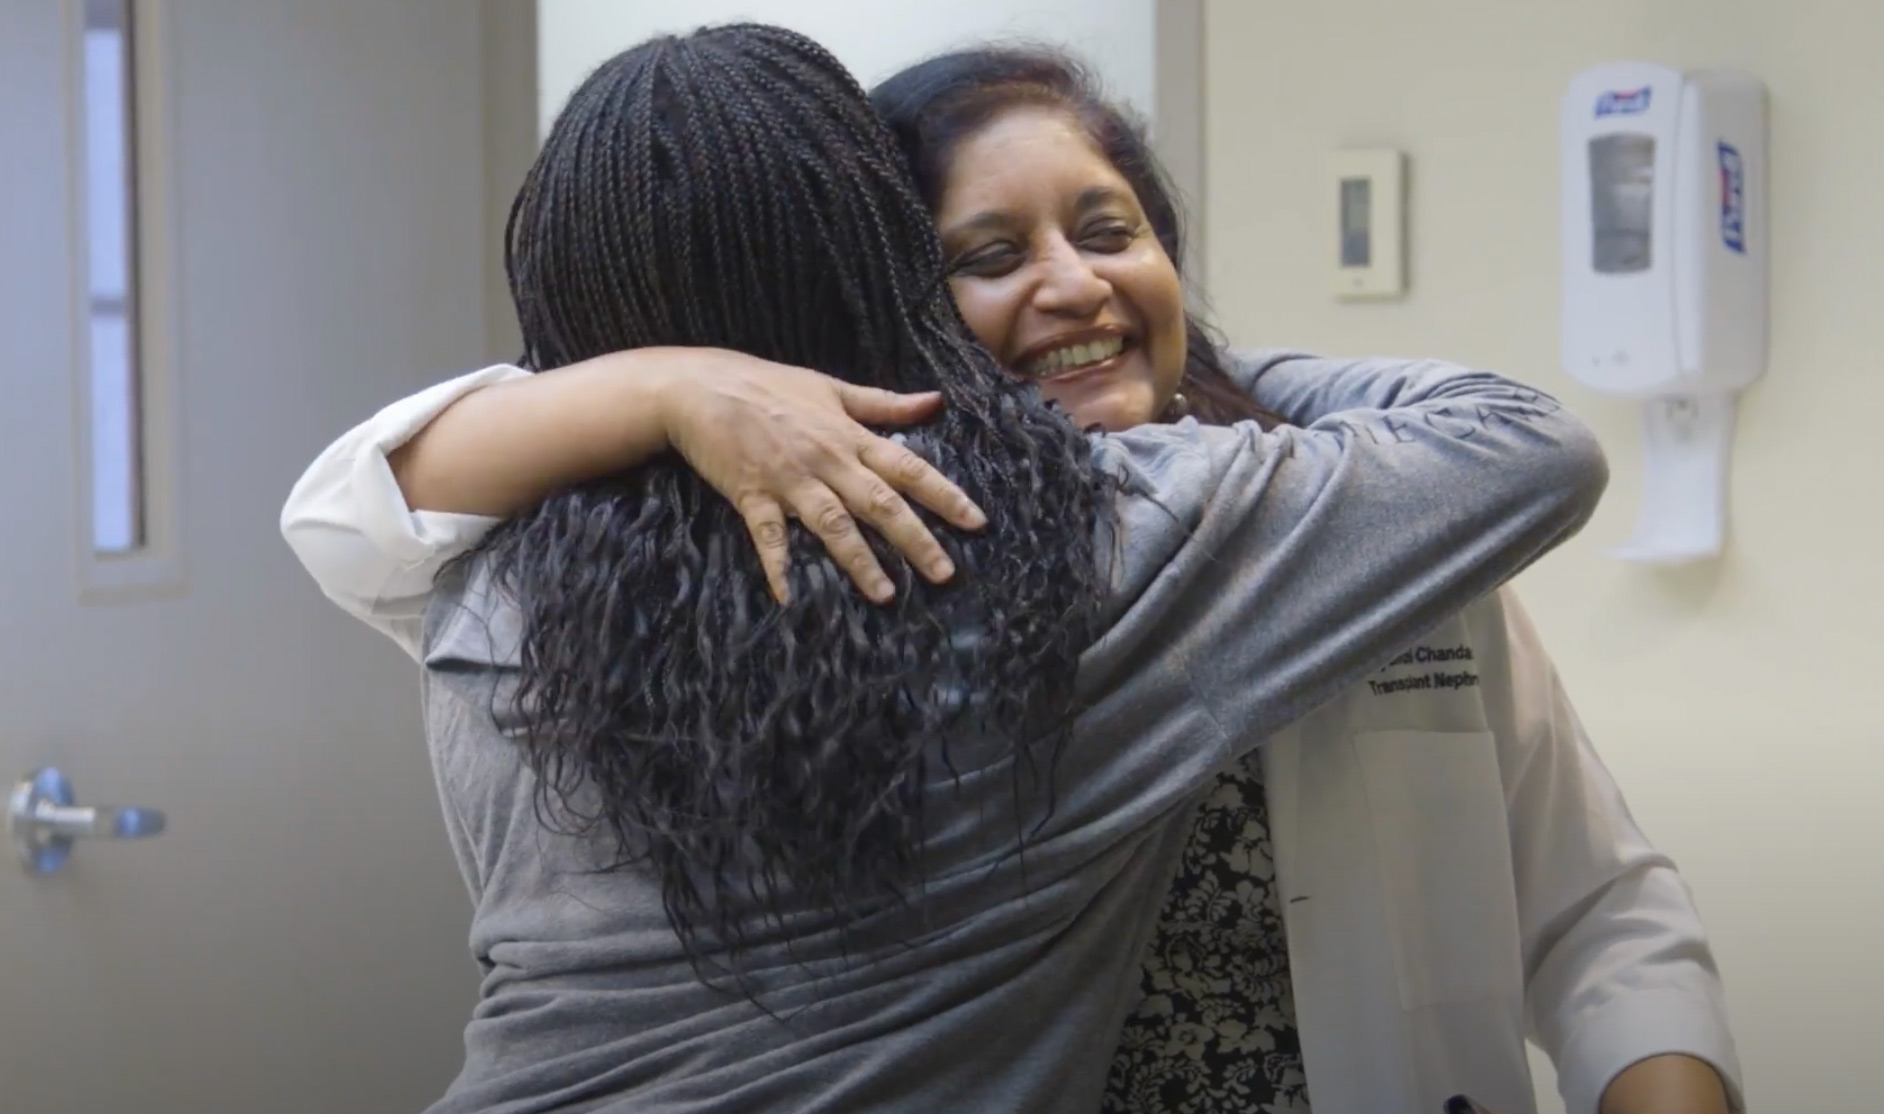 A transplant patient and doctor hug.